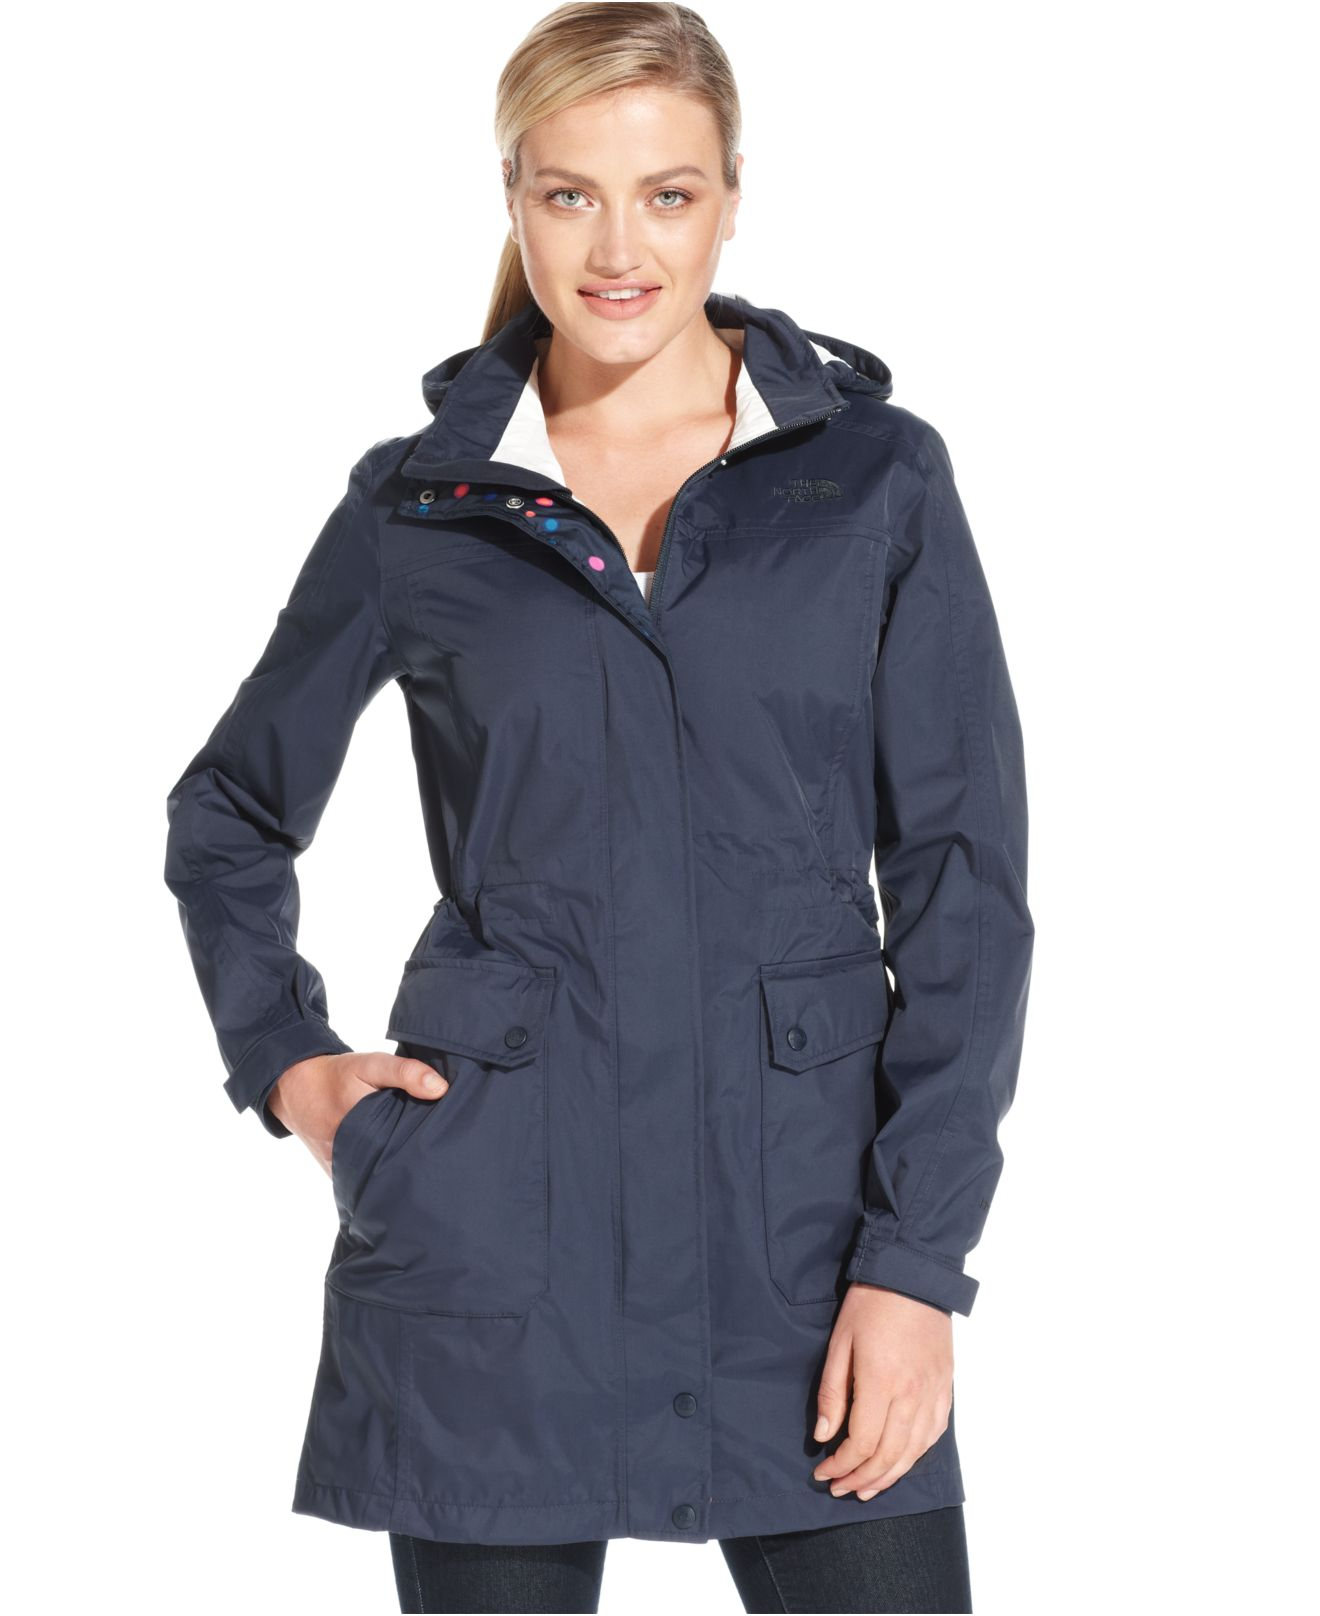 e5e9b9121d65 ... Lyst - The North Face Quiana Hooded Rain Jacket in Blue The North Face  Womens ...